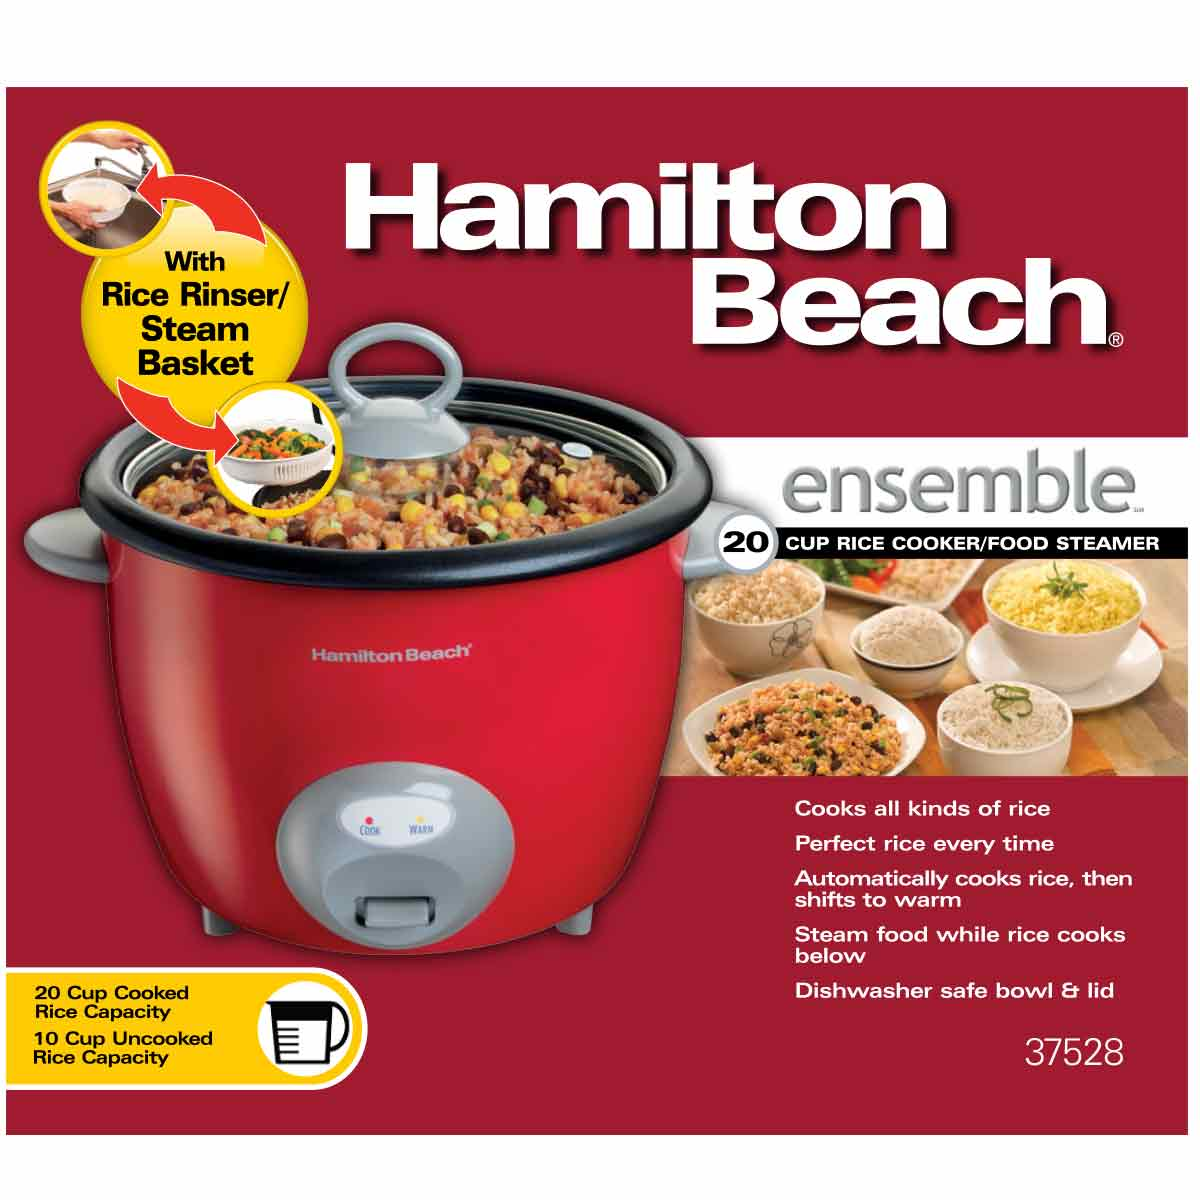 Largest Capacity Rice Cooker Steamer ~ Hamilton beach ensemble™ rice cooker steamer cup